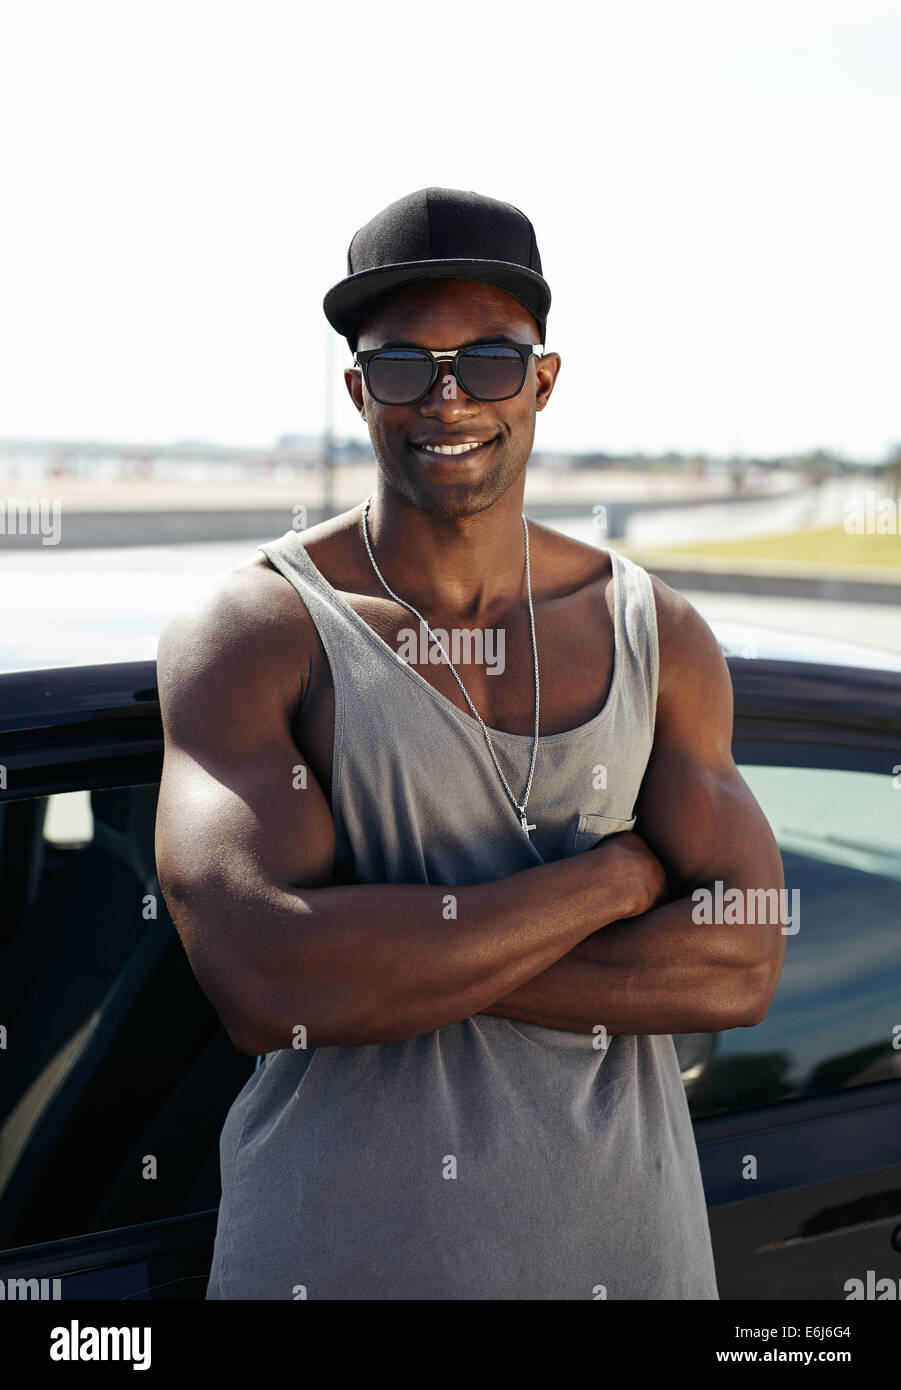 Portrait of handsome African guy with his arms crossed leaning against a car smiling. Stylized muscular guy wearing - Stock Image